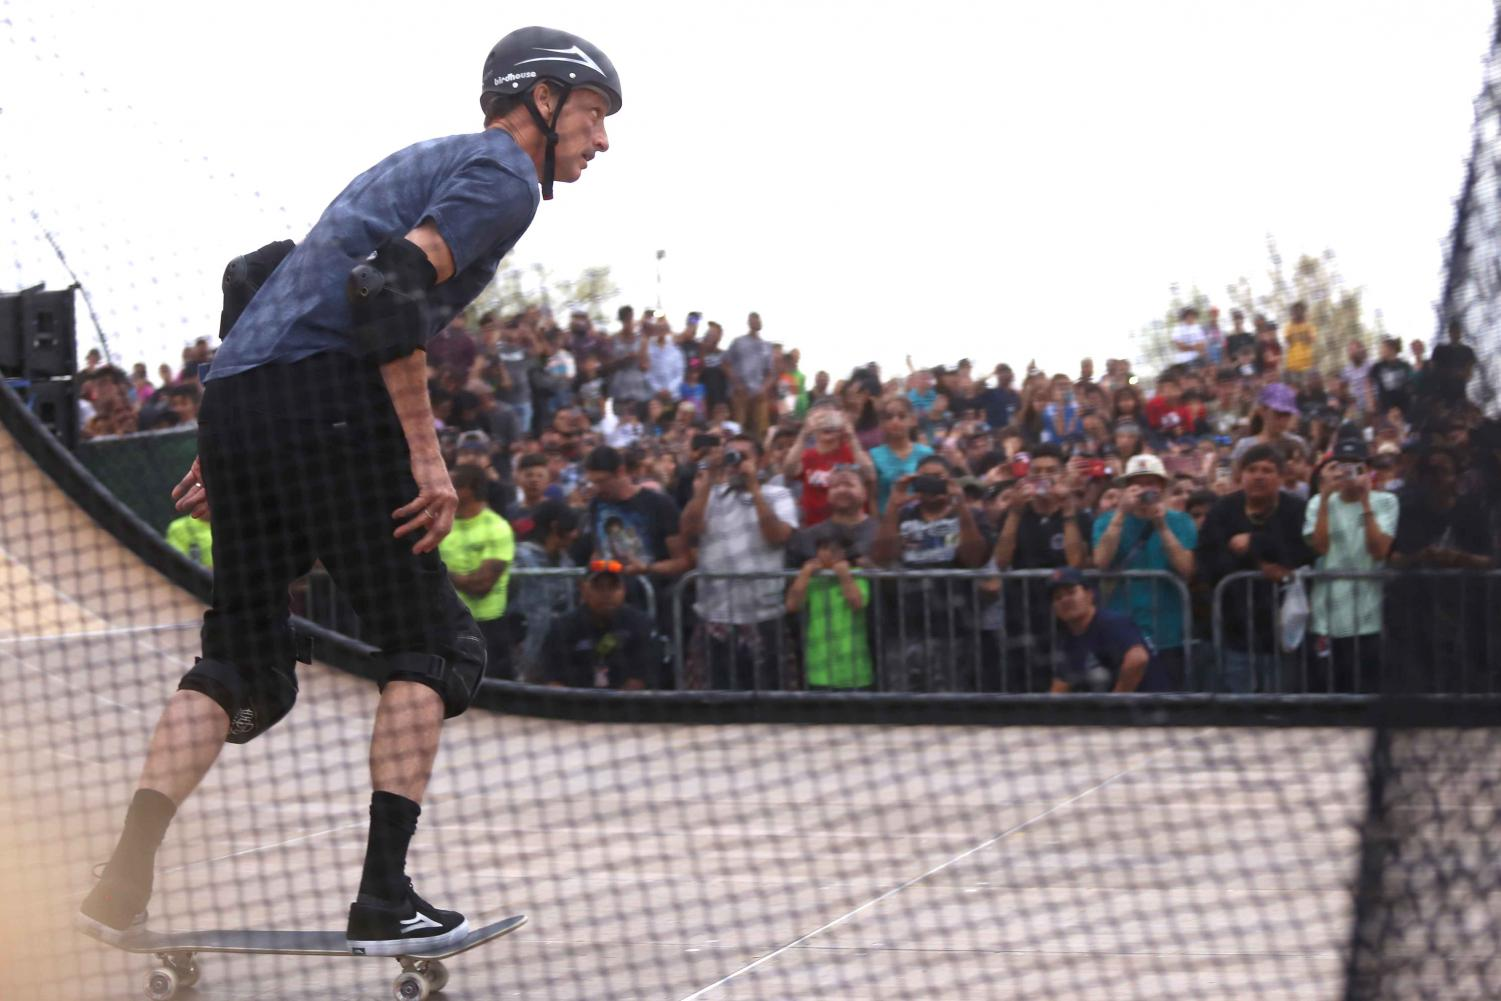 Tony Hawk skates in front of a big crowd at the Pakitu Skate Plaza on Saturday, March 24 in Socorro, TX.